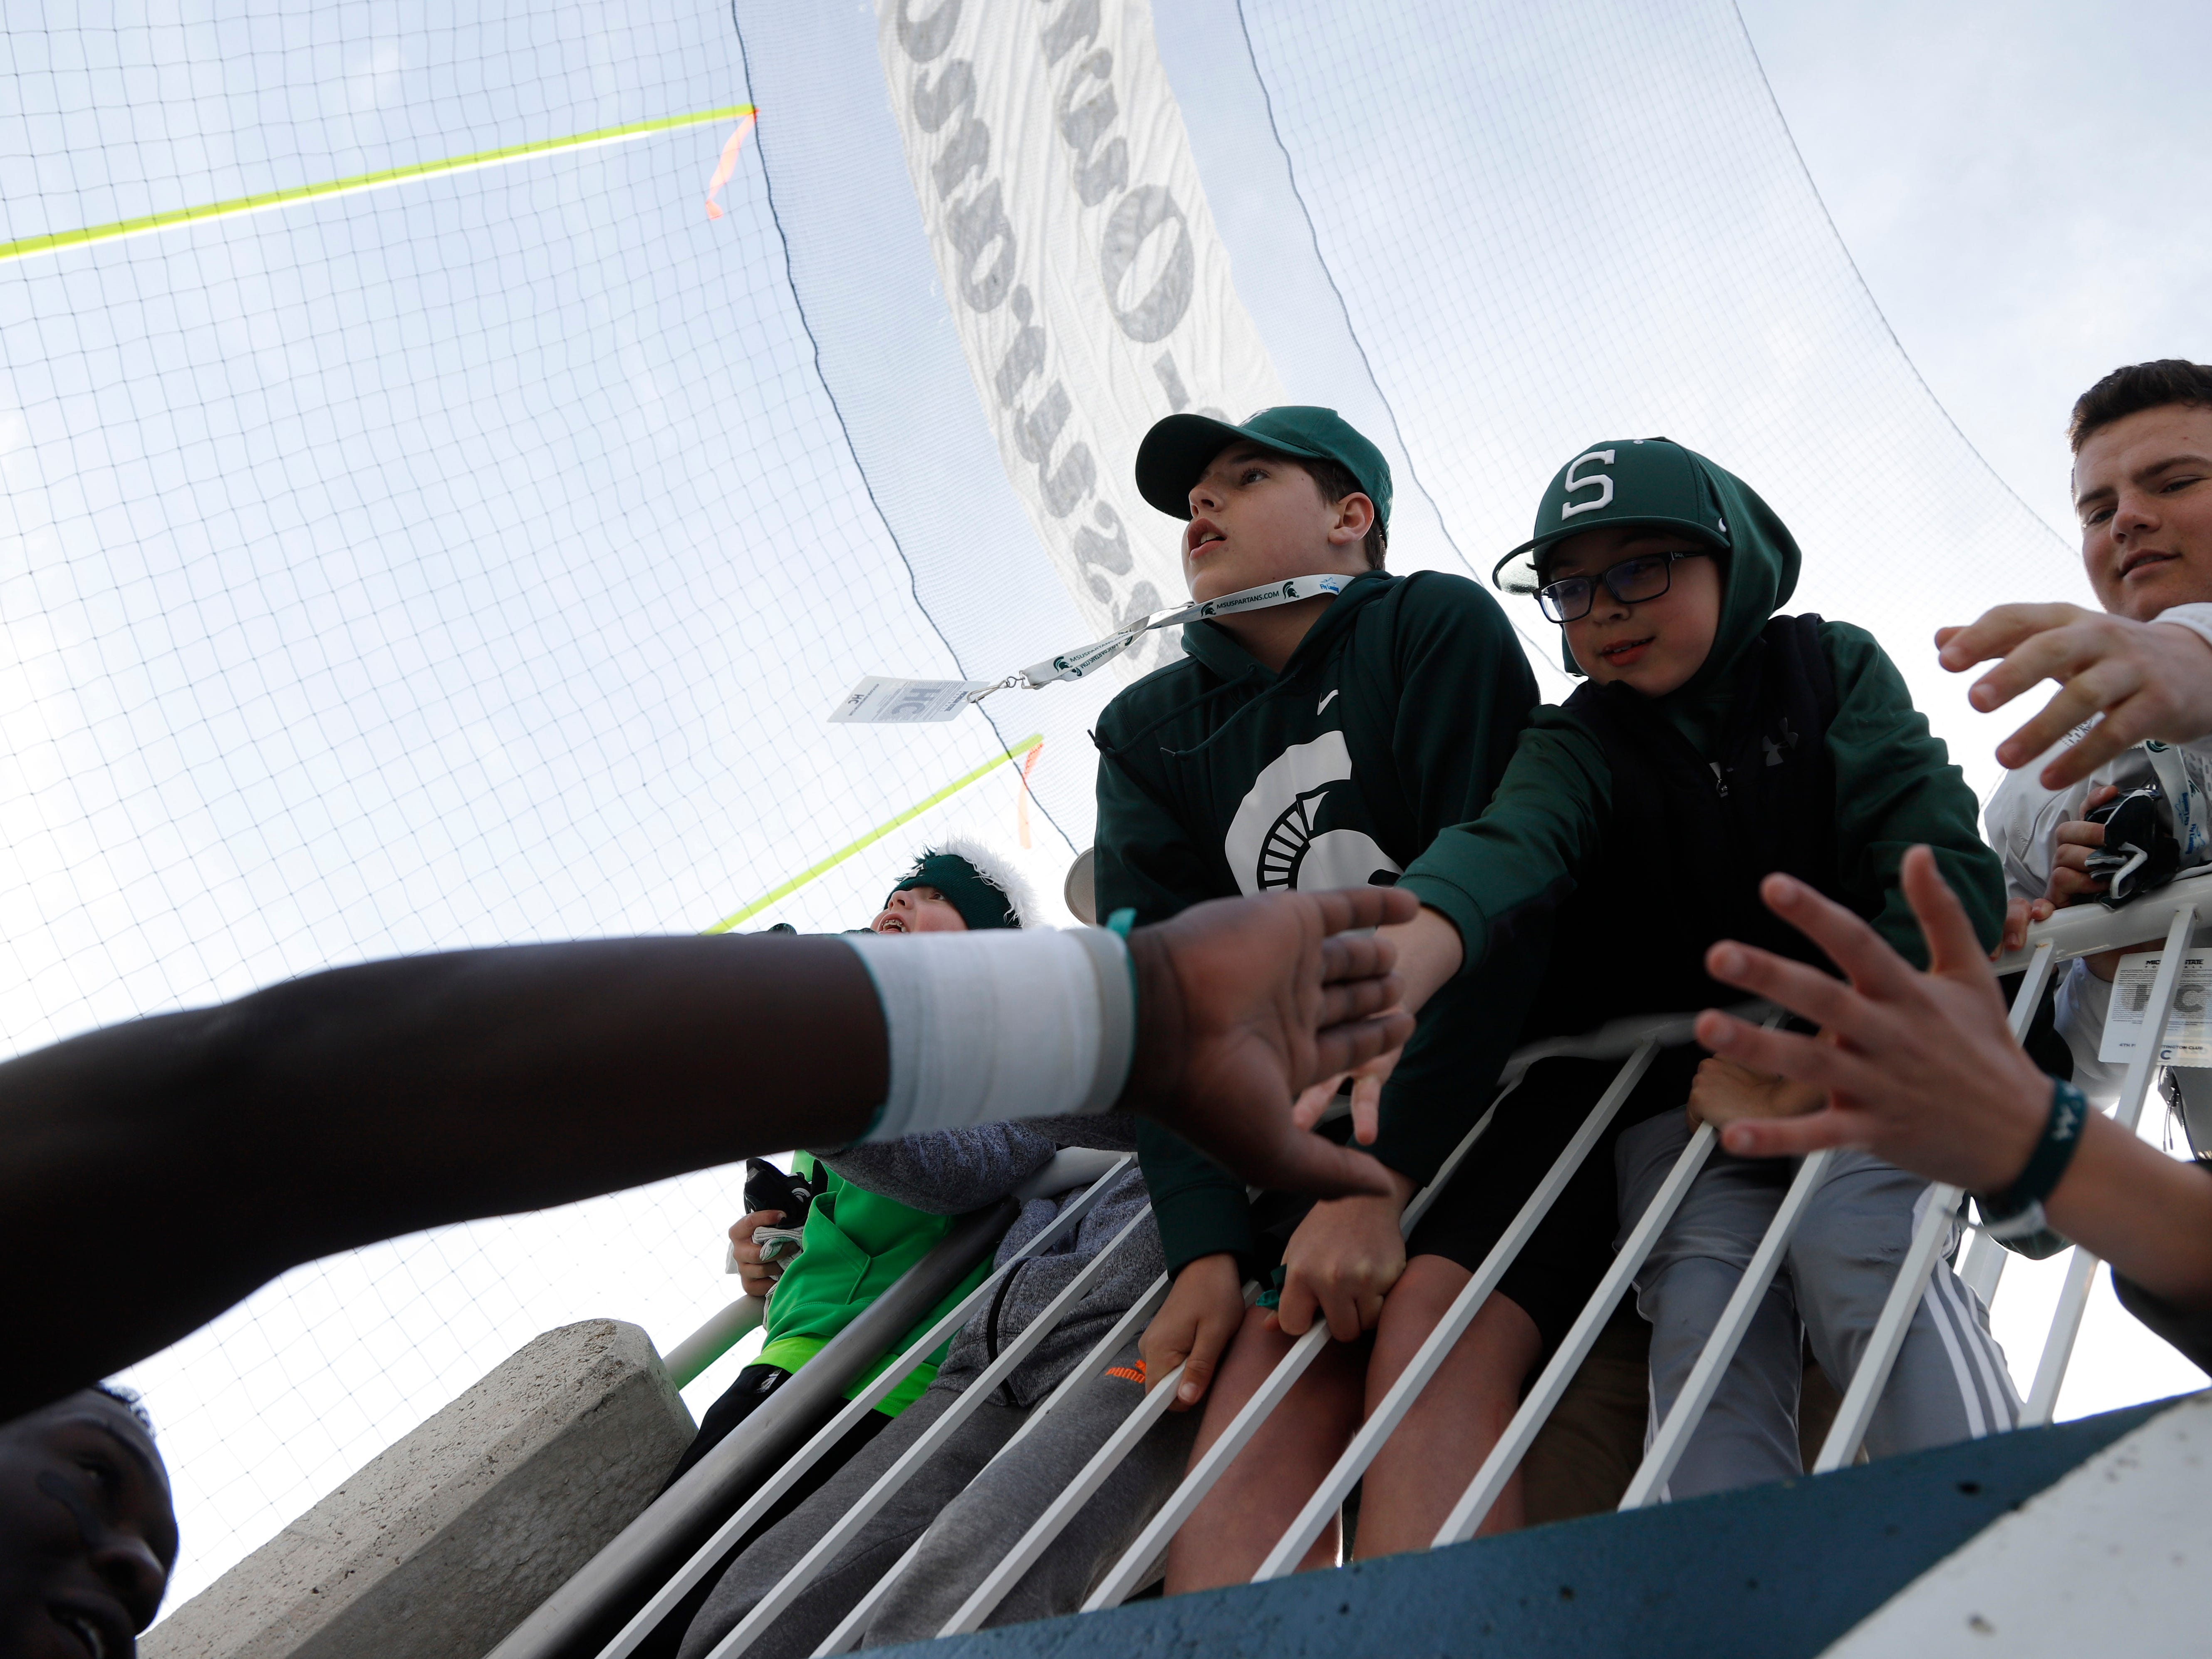 Michigan State's Trenton Gillison, left, greets fans following an NCAA college football spring scrimmage game, Saturday, April 13, 2019, in East Lansing, Mich. (AP Photo/Al Goldis)